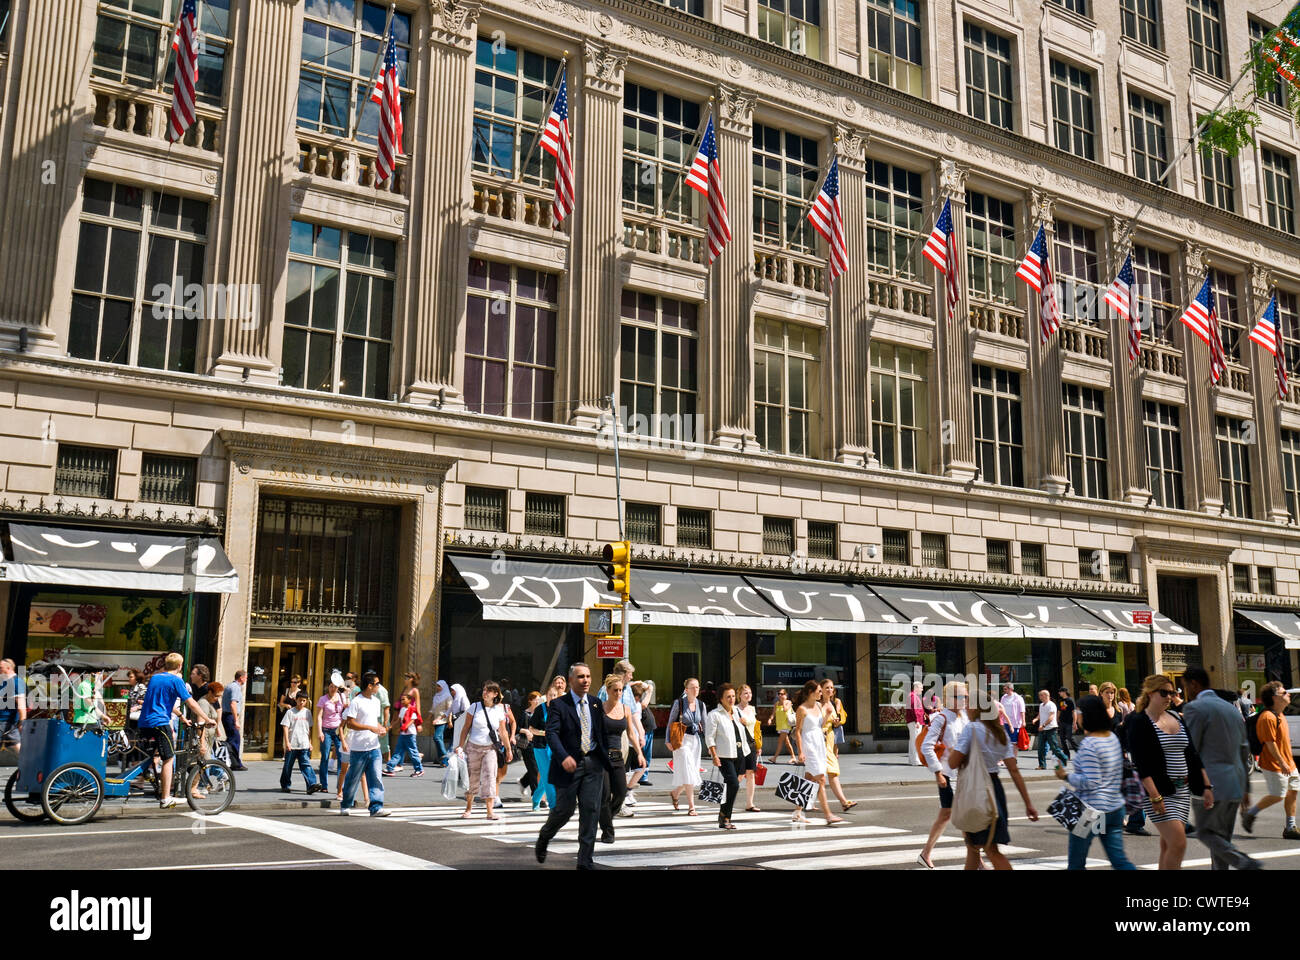 If you plan to splurge at Saks on Fifth or the Apple Store Fifth Ave, staying at a cheap NYC hotel near Fifth Ave shopping might be the best choice. Fifth Avenue offers plenty of special NY hotel promotions guaranteeing the best deals in NYC.